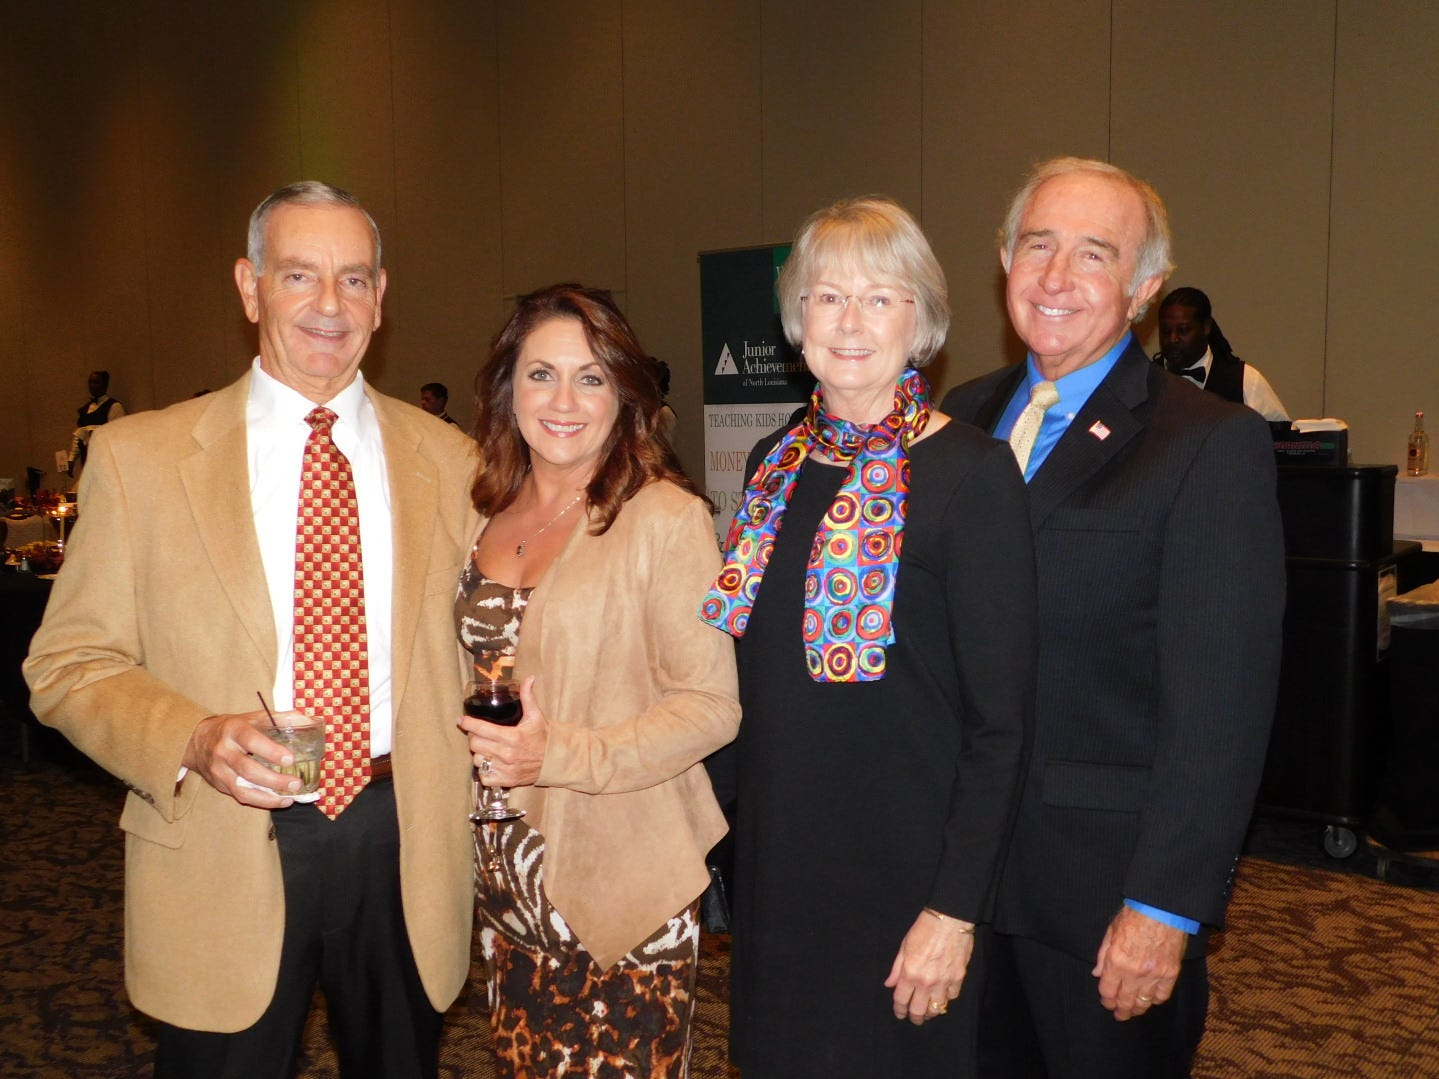 2018 Junior Achievement Business Hall of Fame Laureate Induction Dinner was held on Oct. 25, 2018, at the Shreveport Convention Center. William H. Broyles, II, The Broyles Group, Scott P. Sealy, Sr., Sealy & Company, and Craig Spohn, Cyber Innovation Center were inductees.